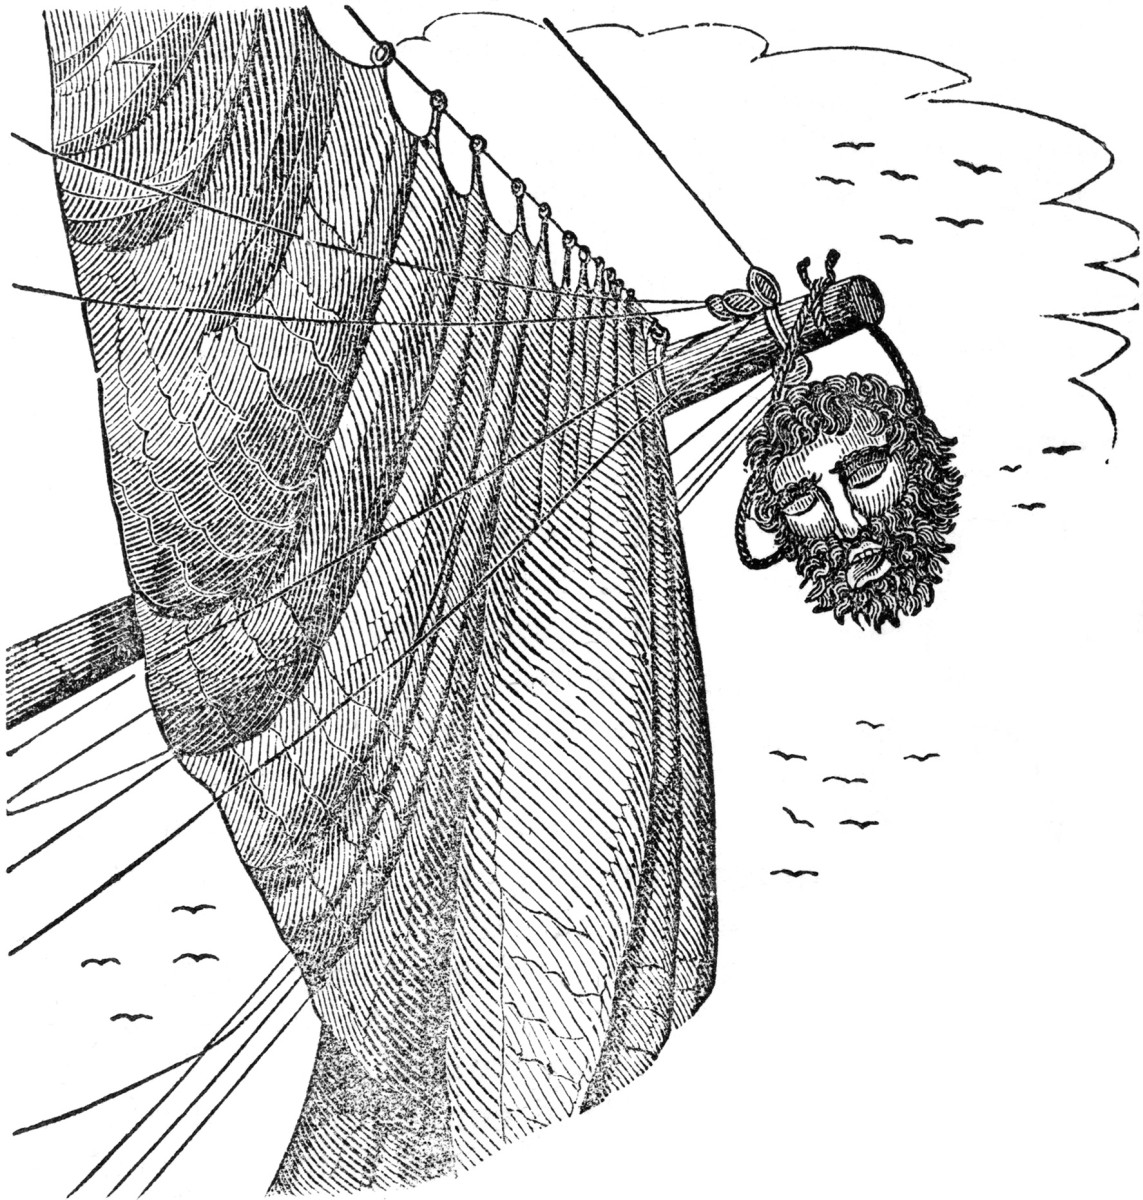 After Blackbeard's head was cut off, they hung his head on the bowsprit, so they would be able to prove they had killed him.